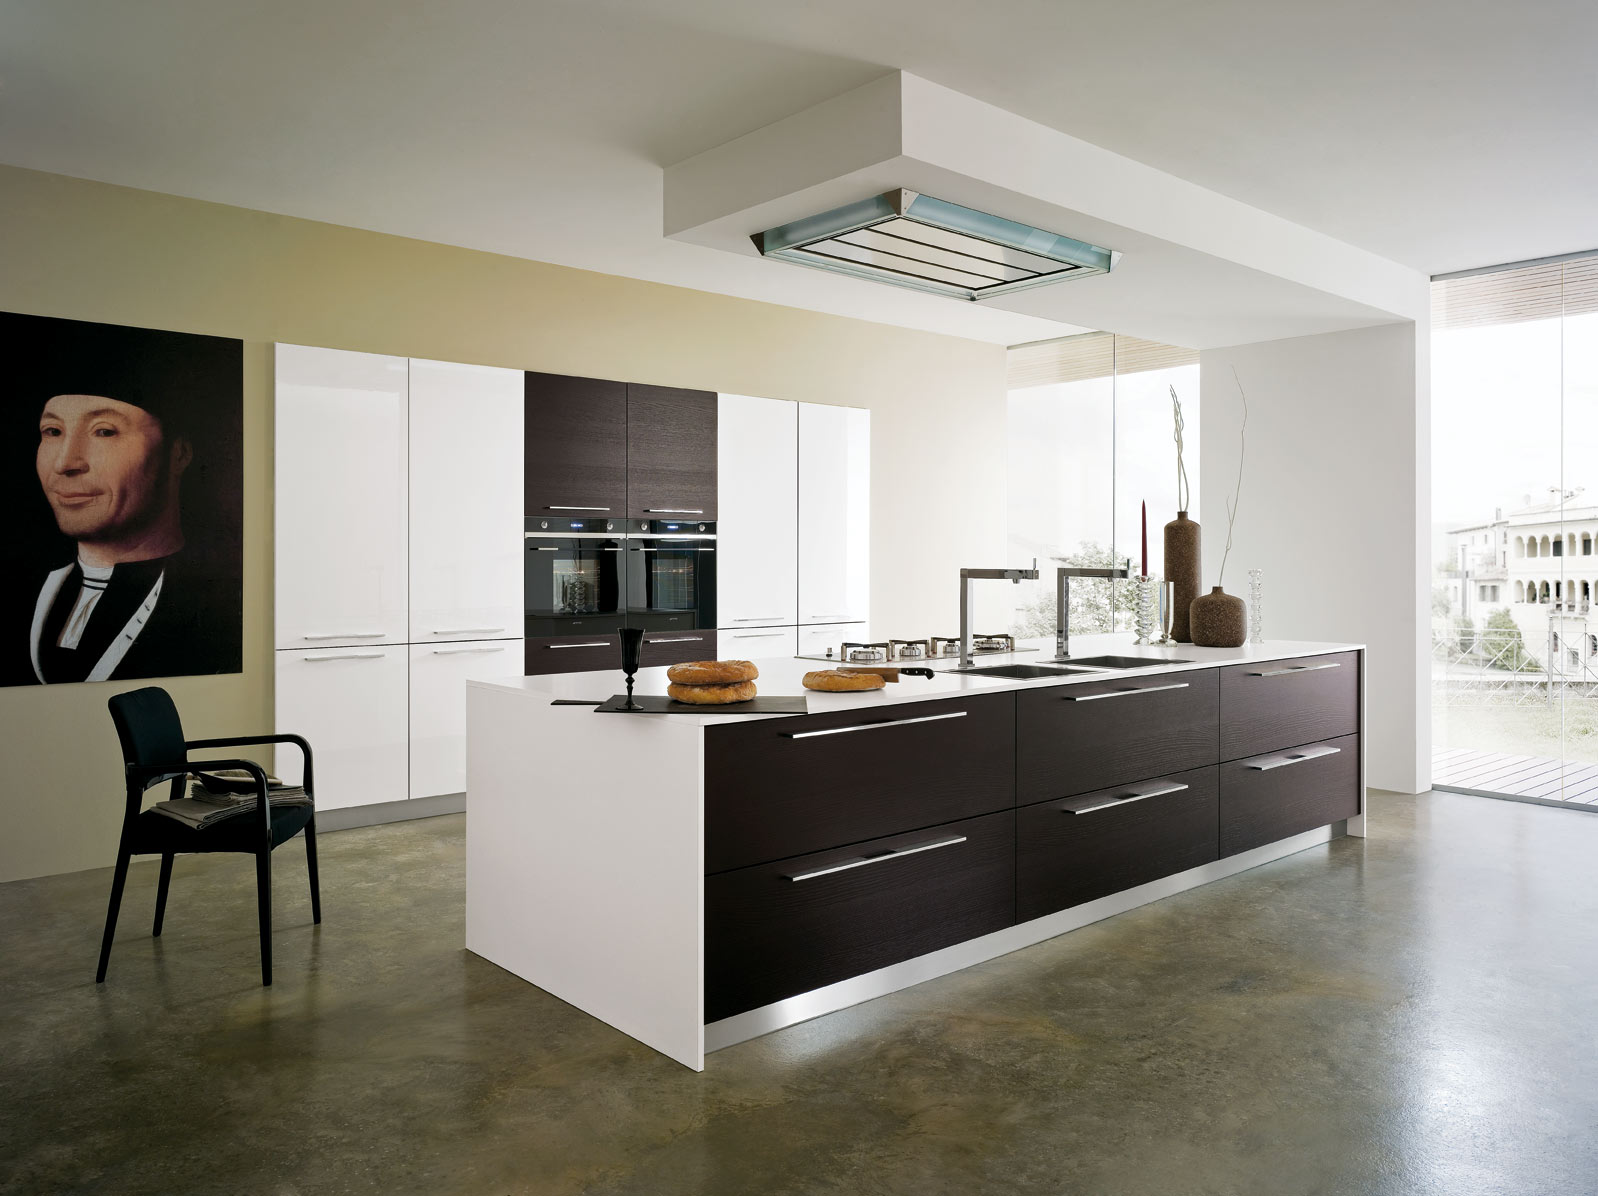 Cucina zenith in rovere weng e laccato bianco gicinque cucine - Cucina laccato bianco ...